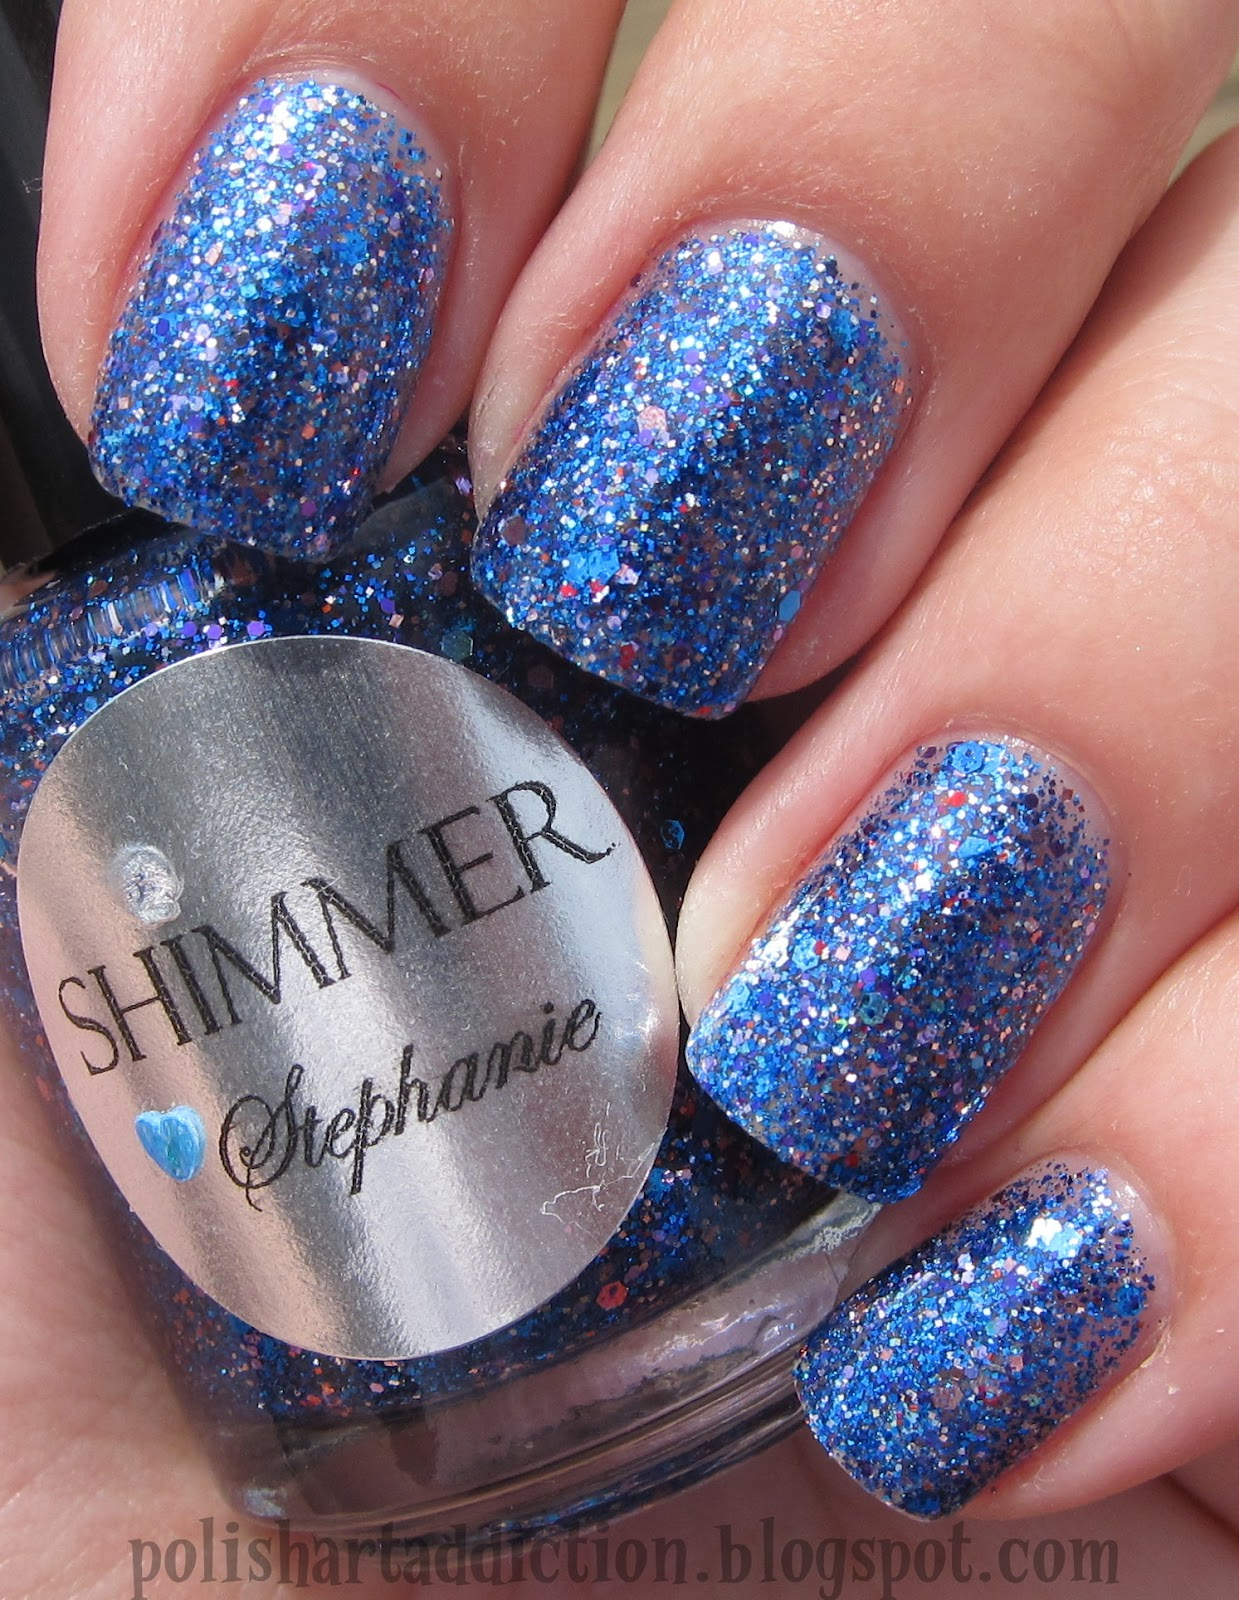 Shimmer Polish - Stephanie & Trisha